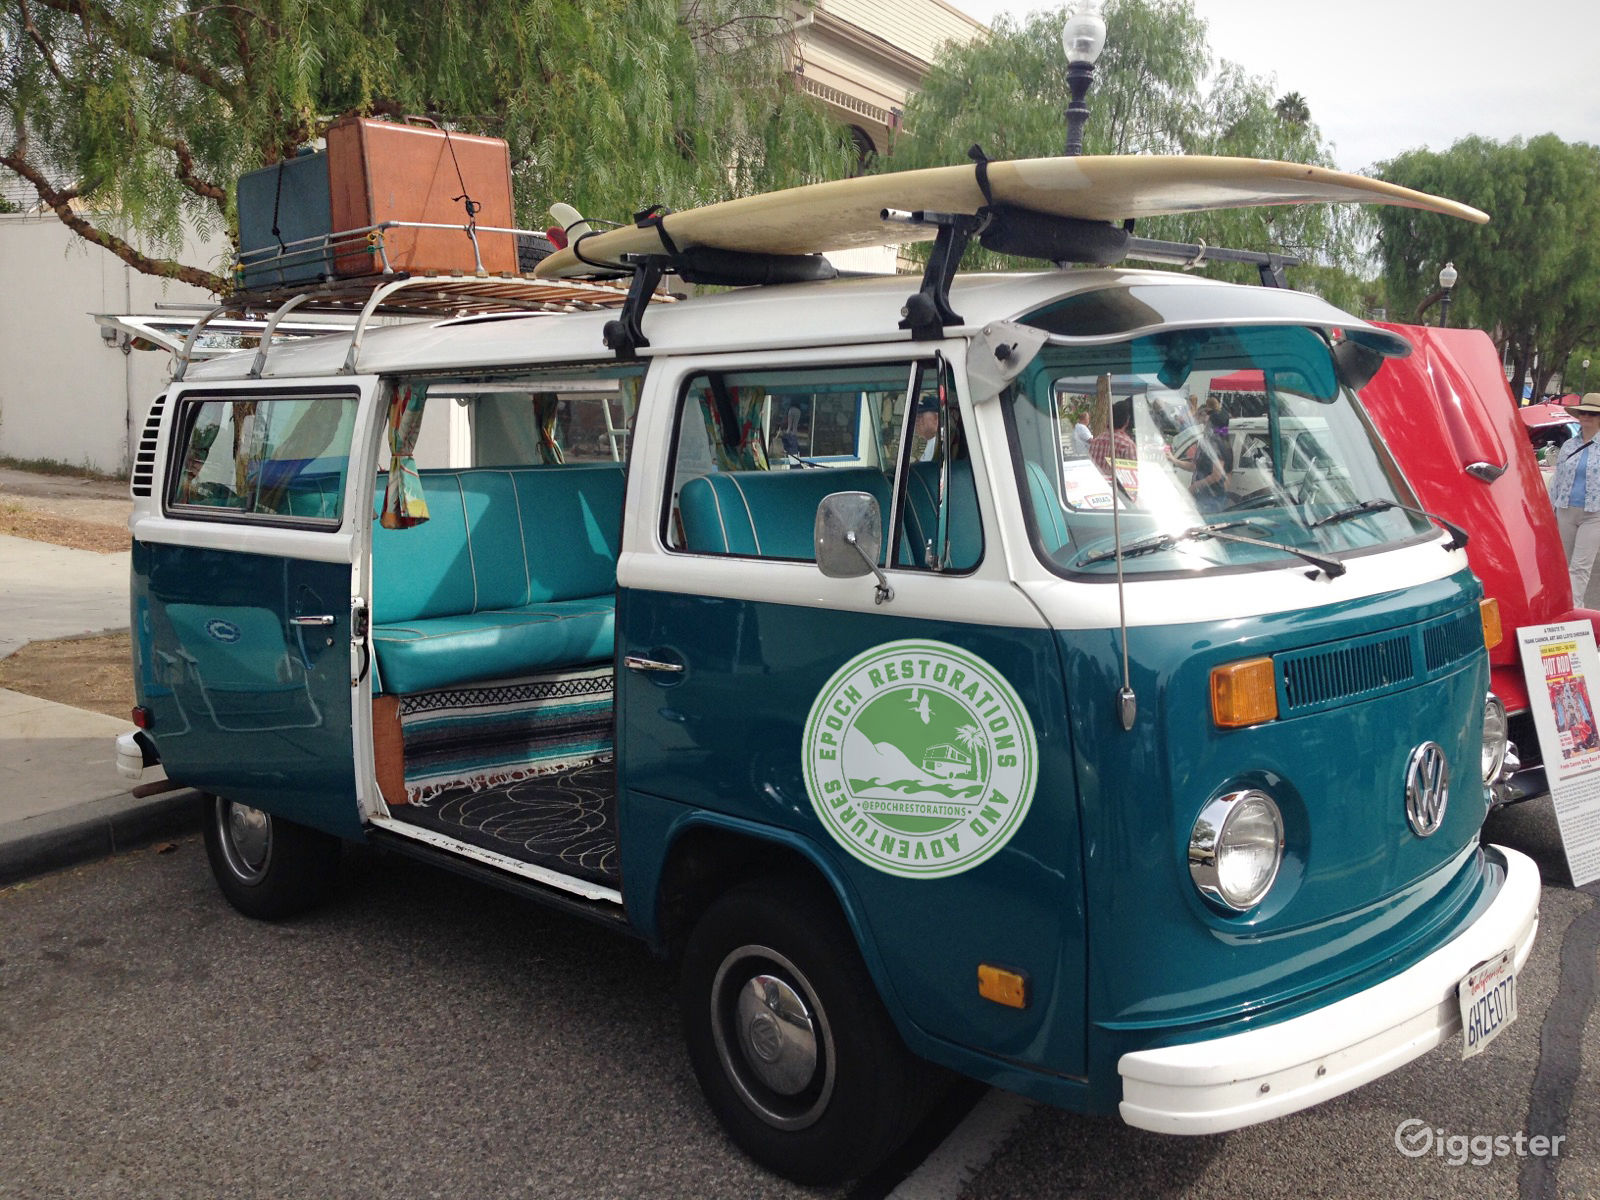 Epoch Restorations and Adventures 1979 VW Bus. Vintage / Classic van rental: Los Angeles, Orange County, Ventura County, Santa Barbara, San Diego.